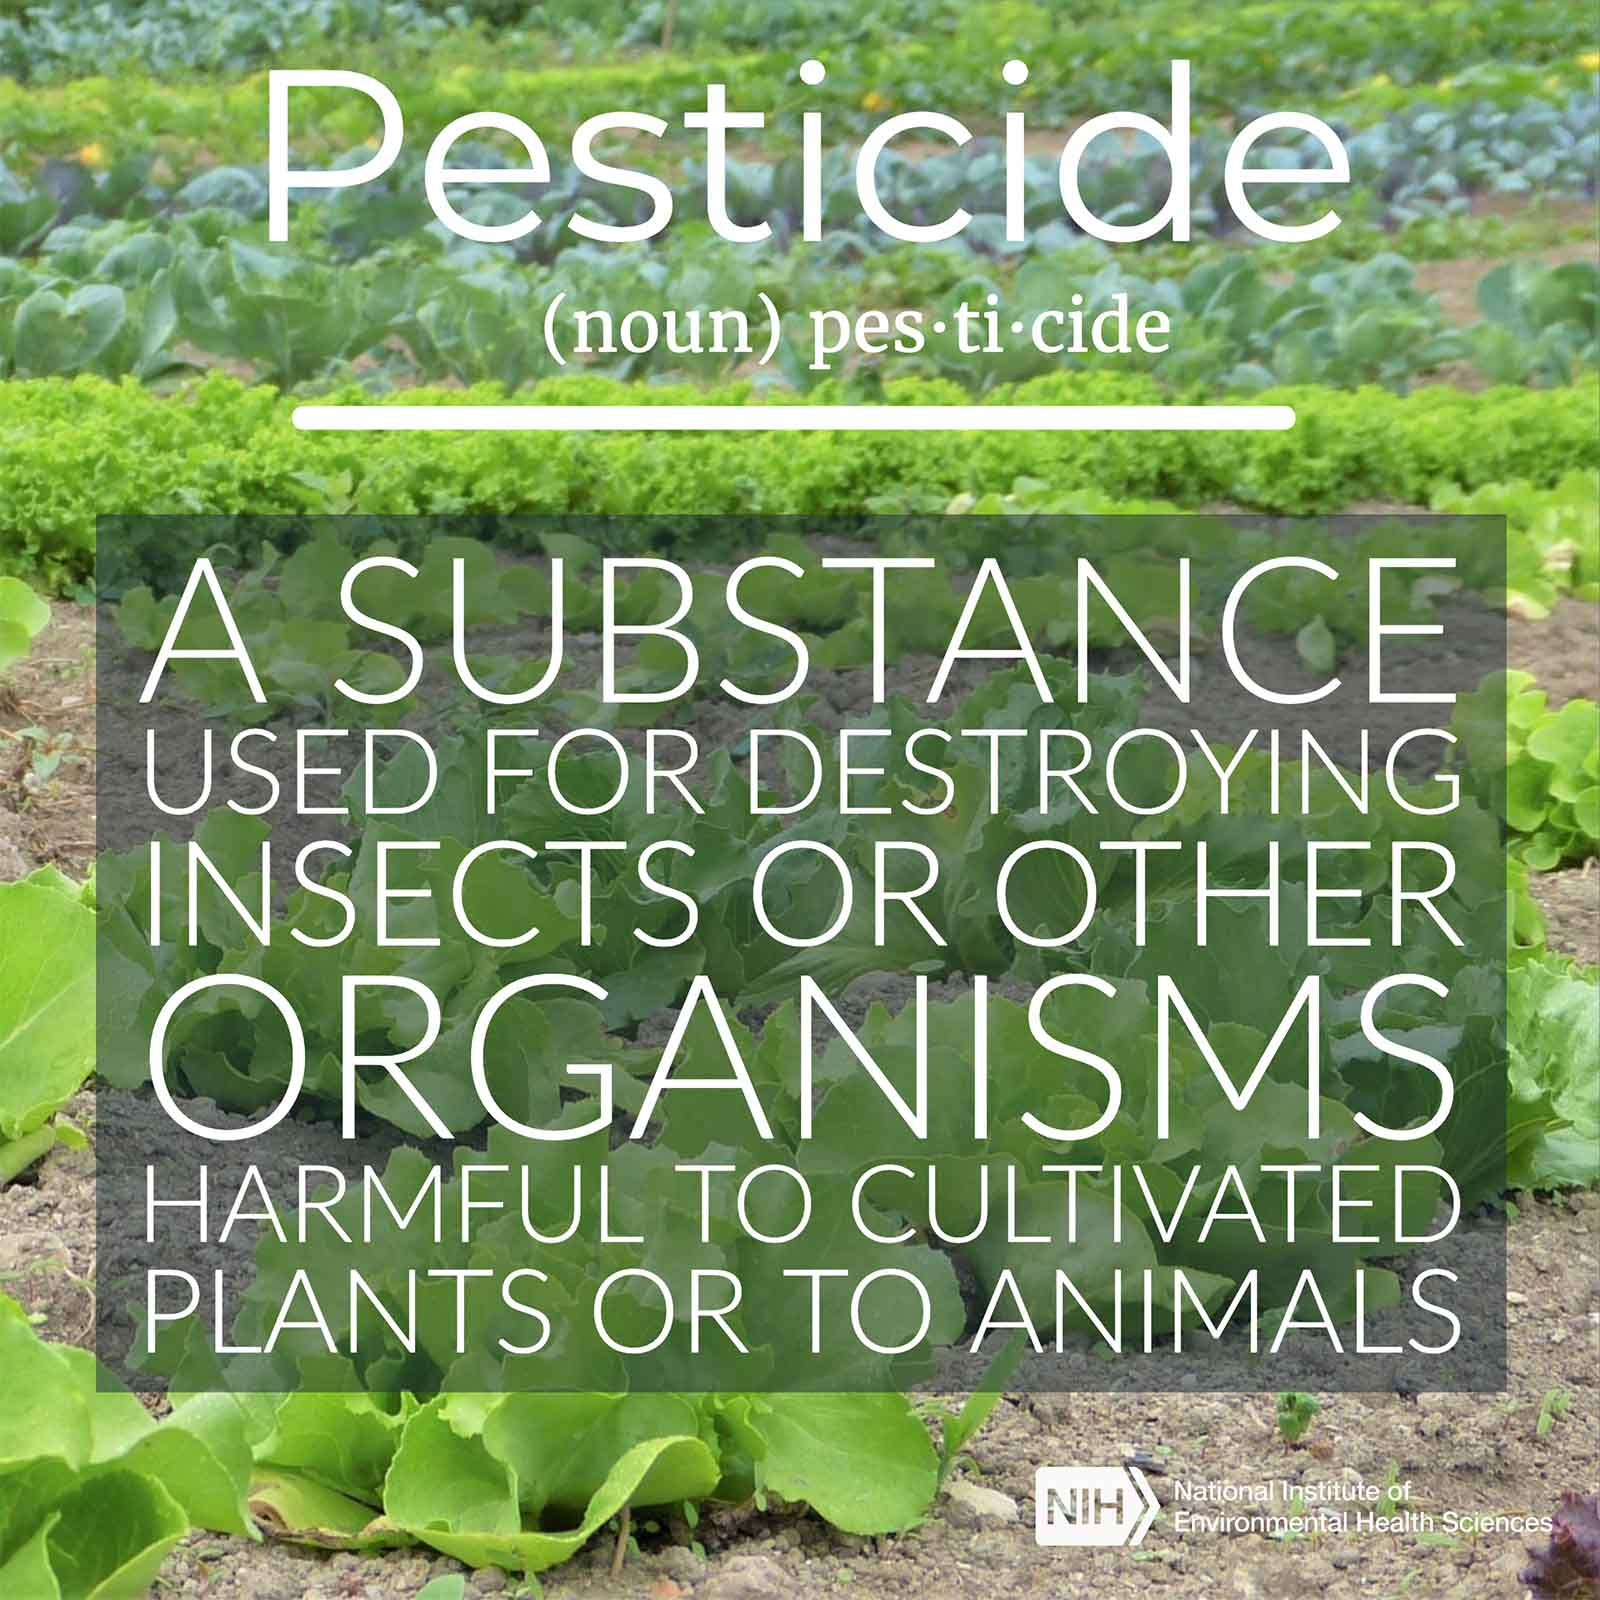 Pesticide (noun) defined as a substance used for destroying insects or other organisms harmful to cultivated plants or to animals